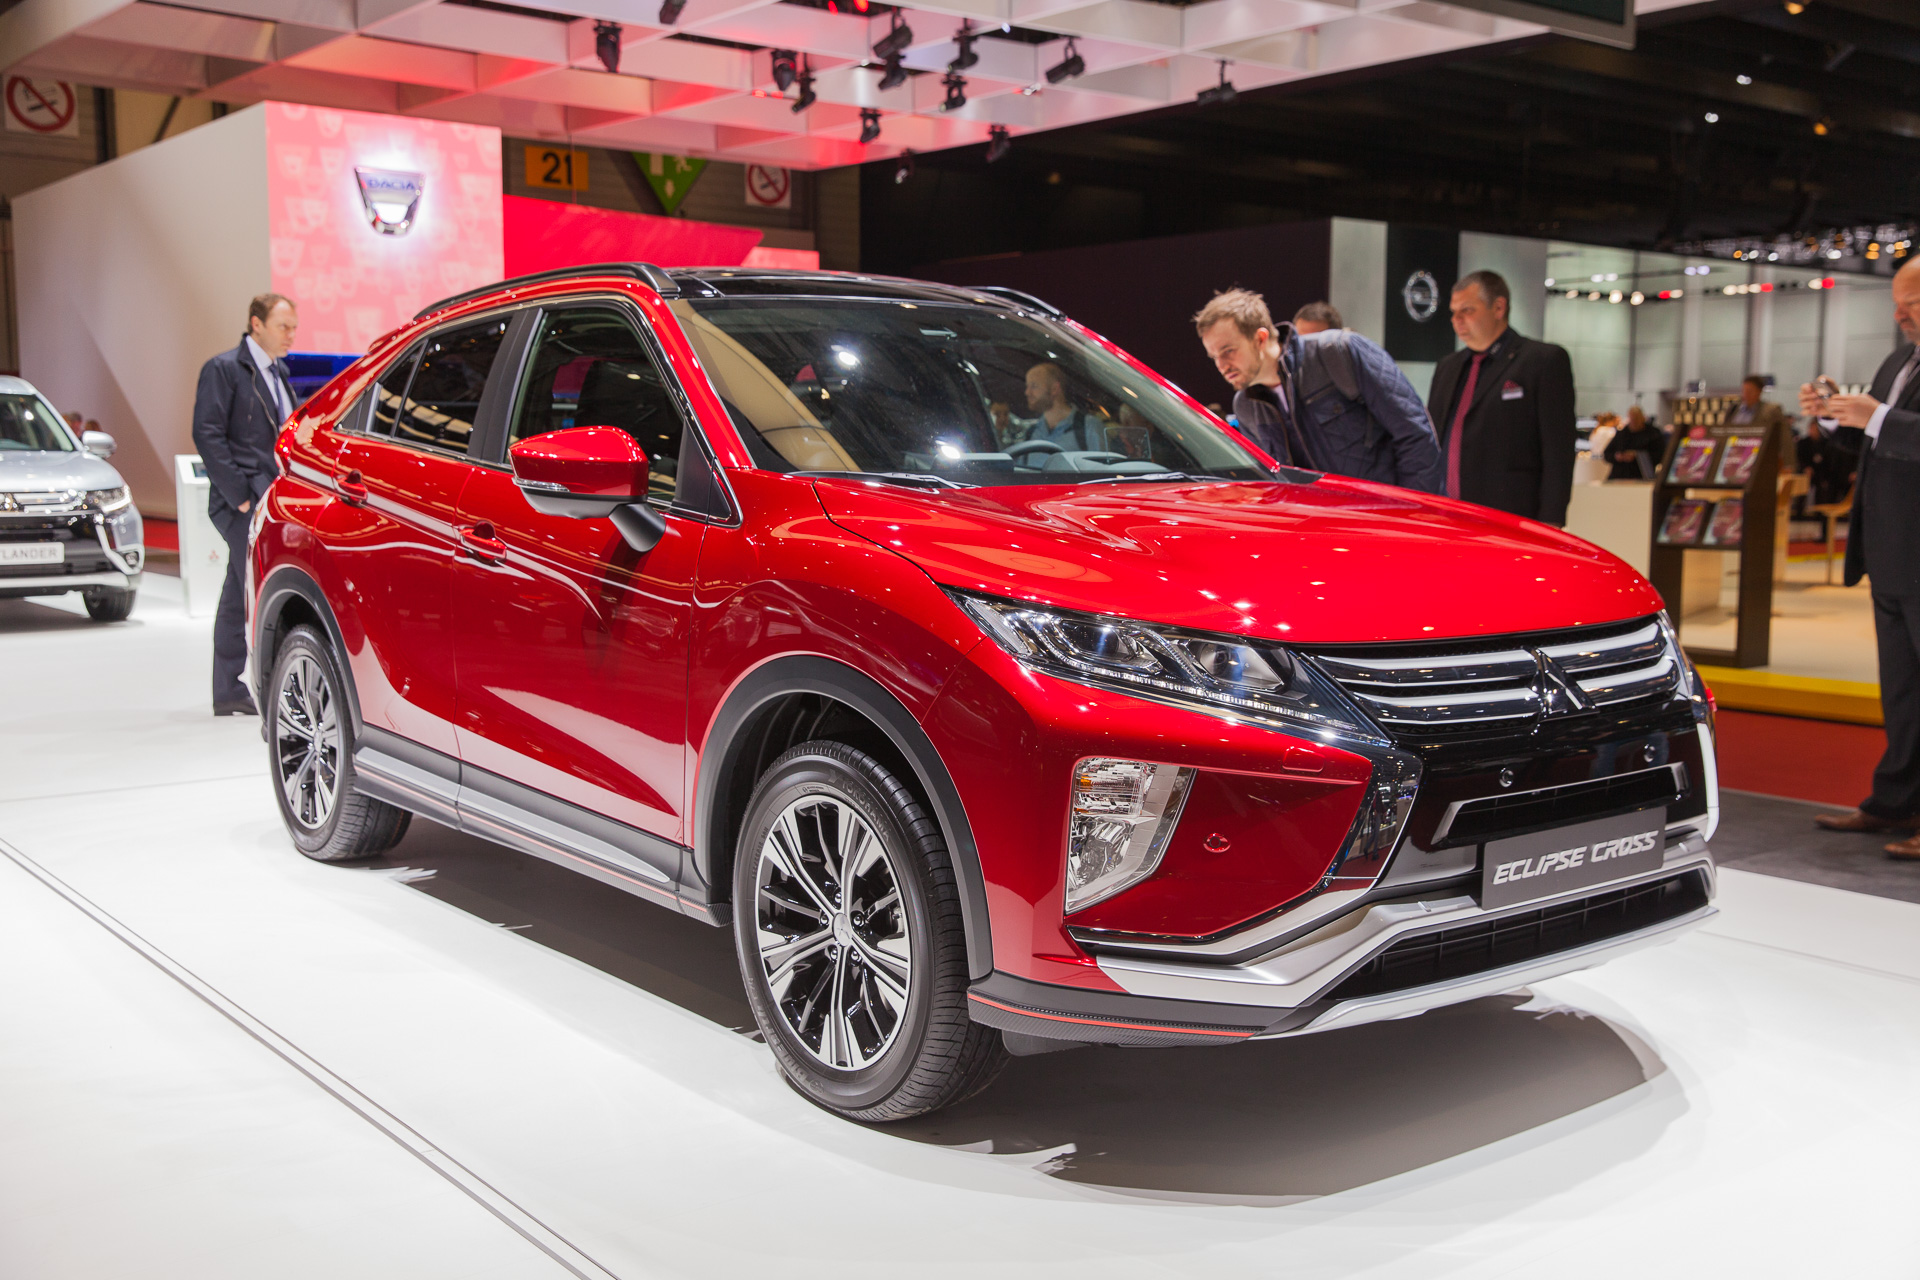 2018 Jaguar F Type >> 2018 Mitsubishi Eclipse Cross debuts at Geneva auto show